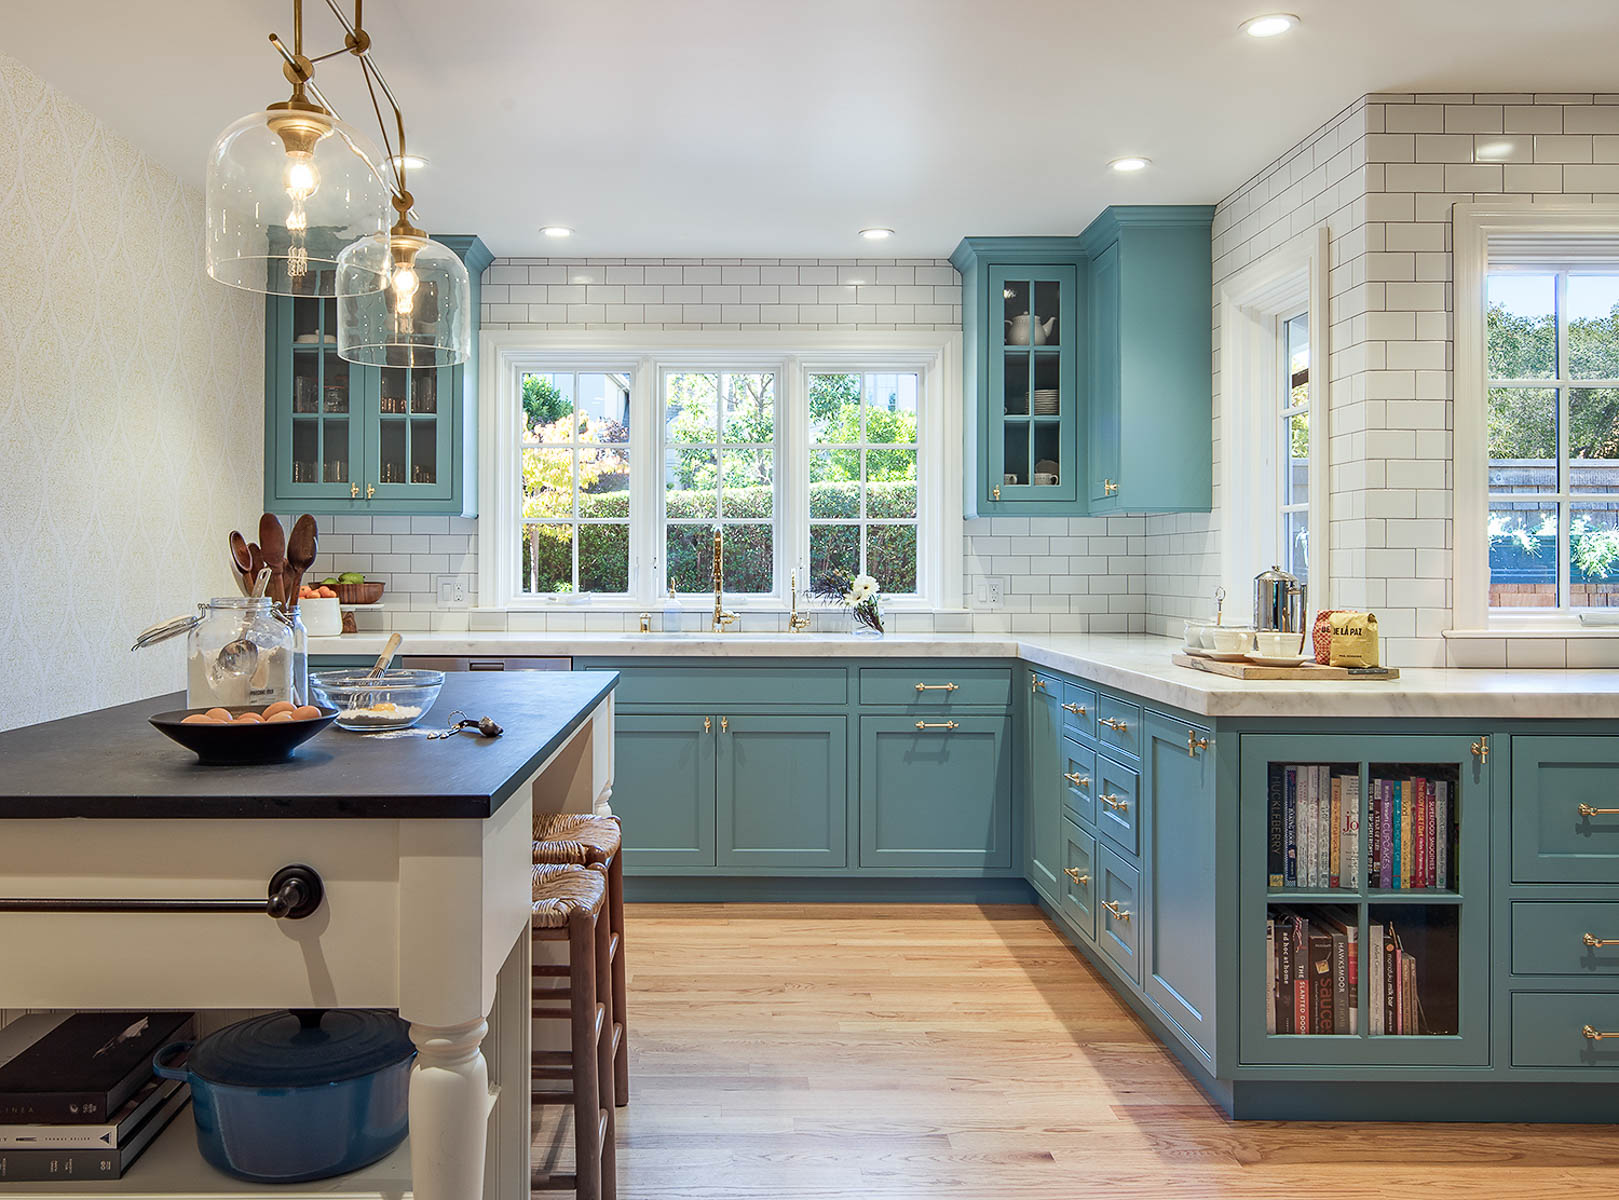 LMB_Interiors_Hillsborough_Green_Design_Kitchen_AFTER_2